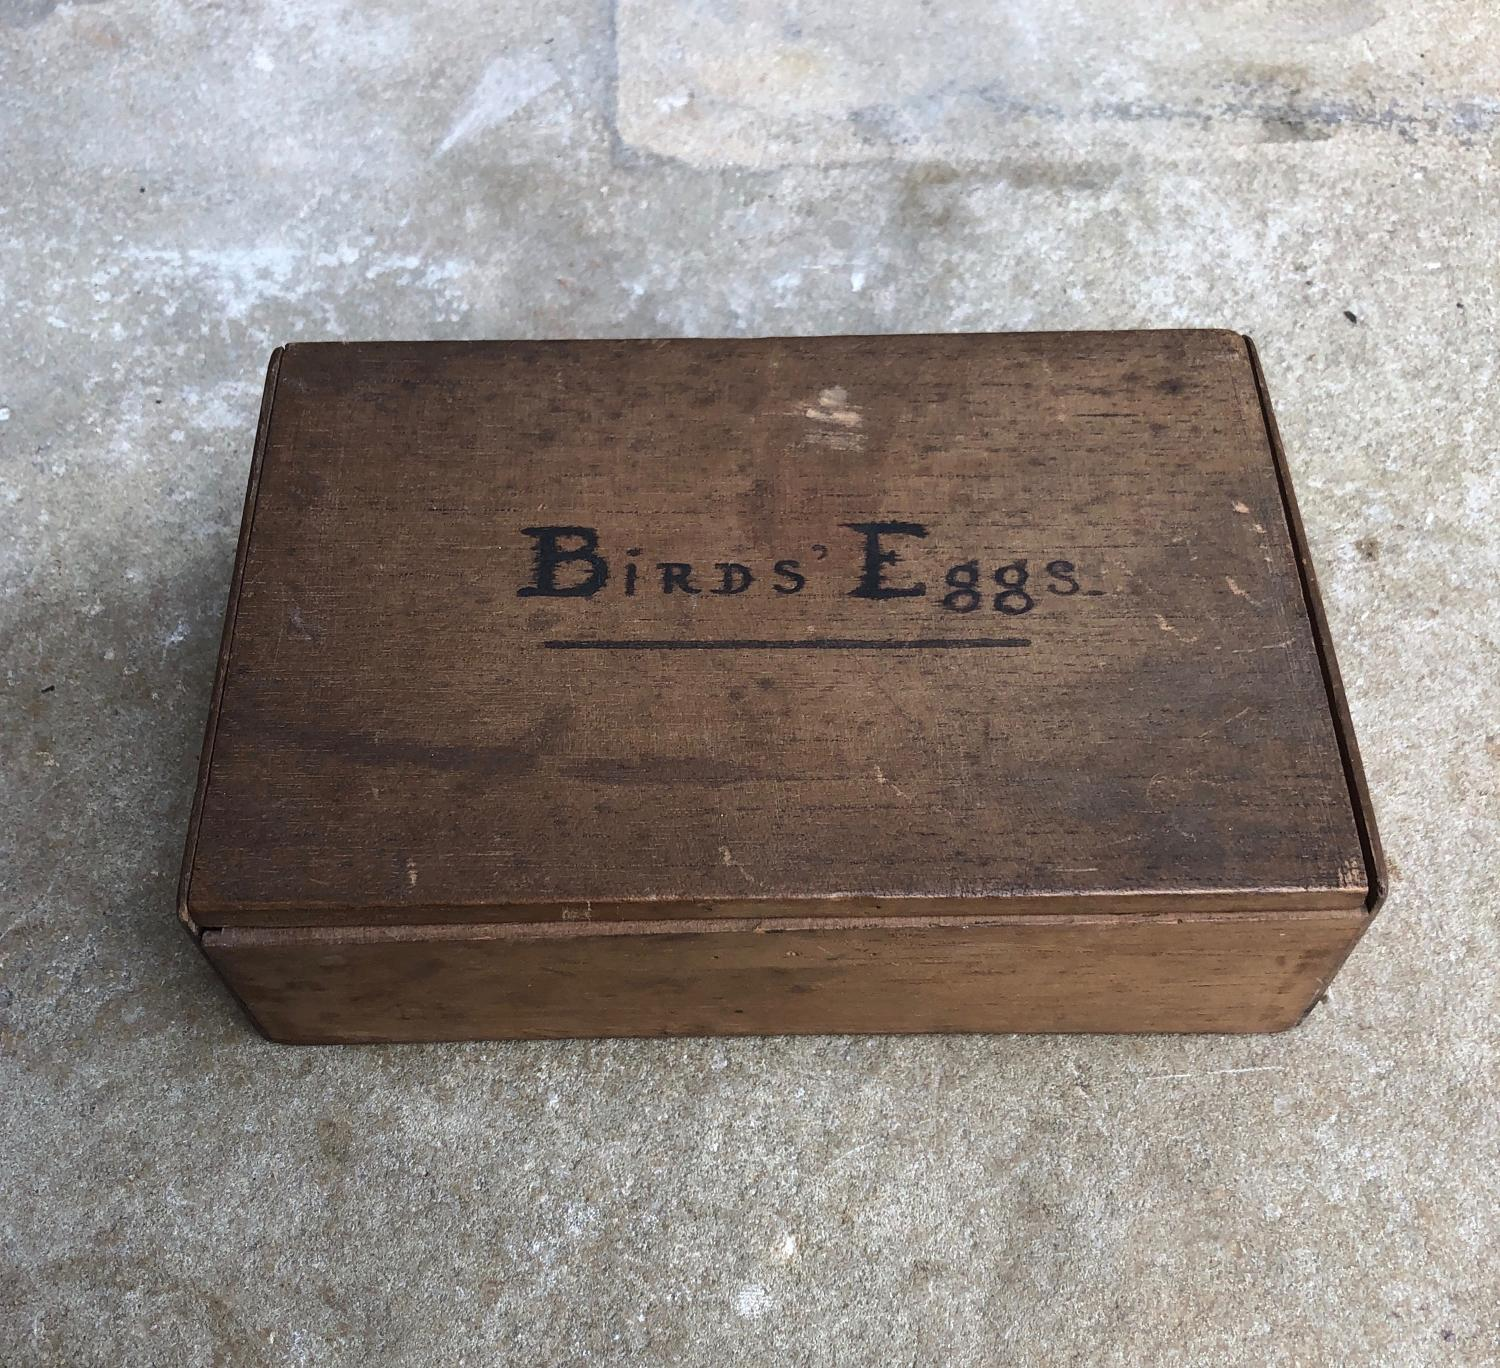 Antique Cigar Box used to keep Birds Eggs - Lovely Condition